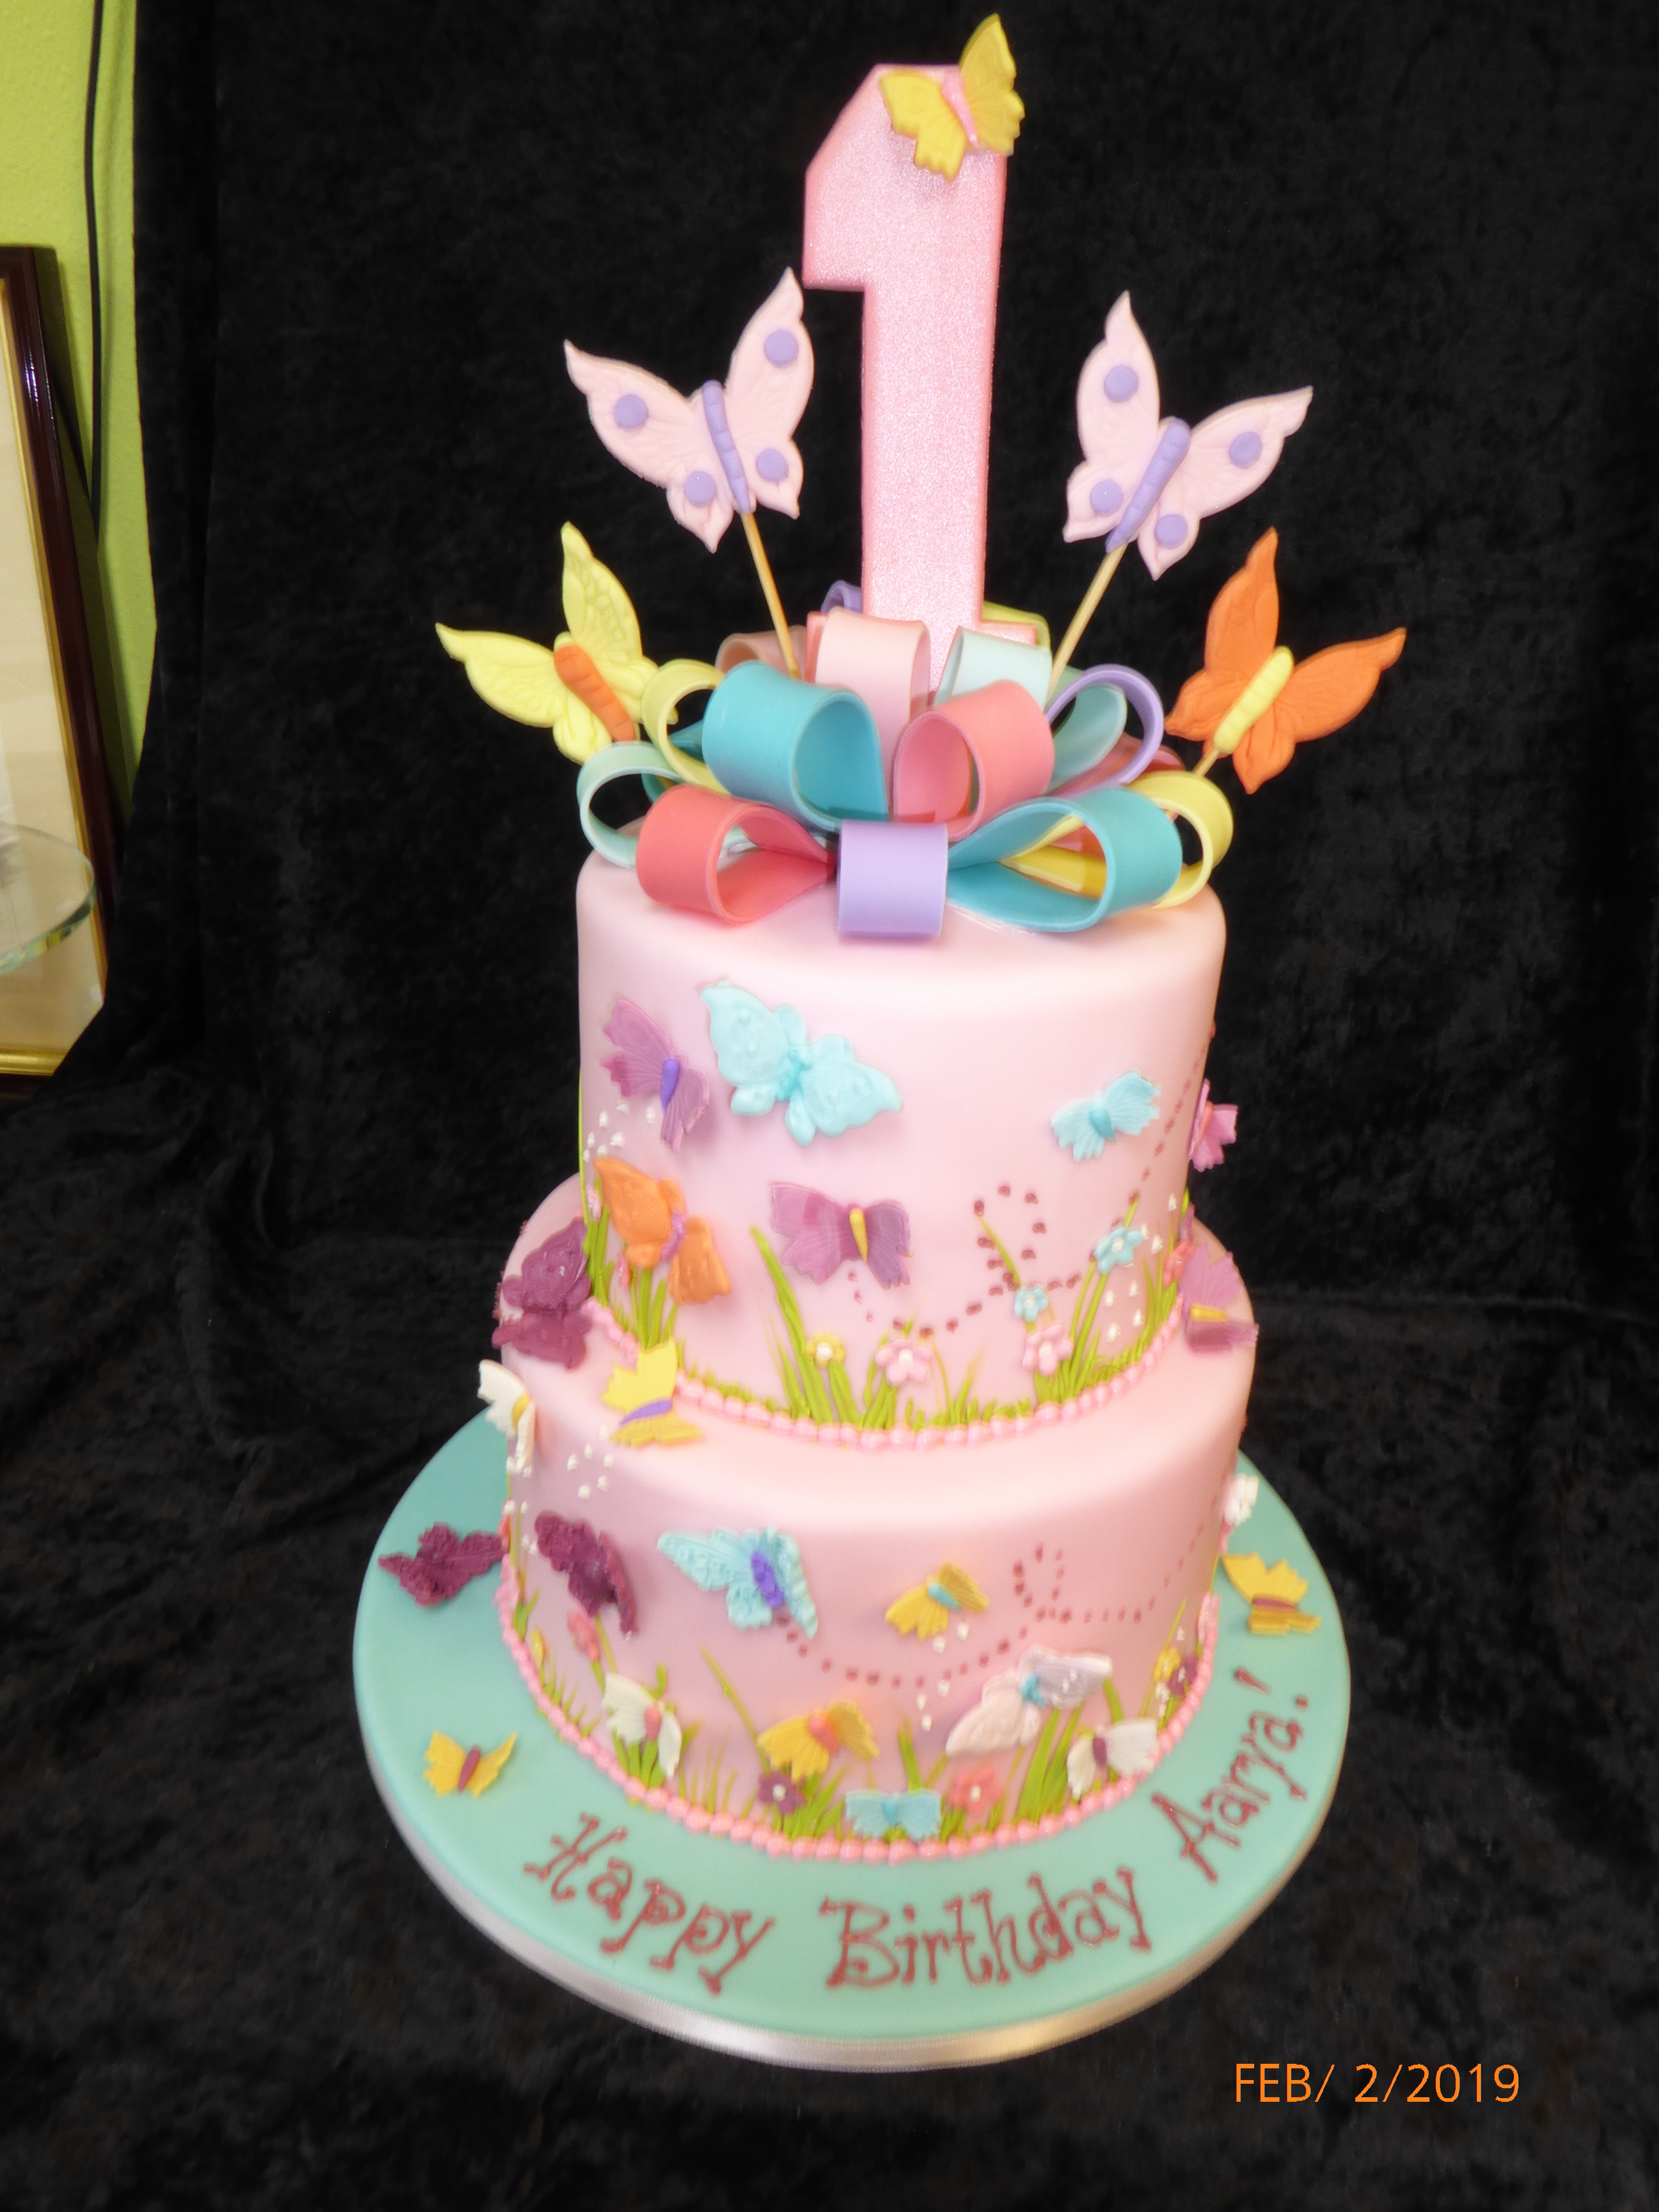 3155, first birthday, 1st birthday, butterfly, butterflies, flower, flowers, bow, bows, ribbon, pink, yellow, orange, blue, tiered